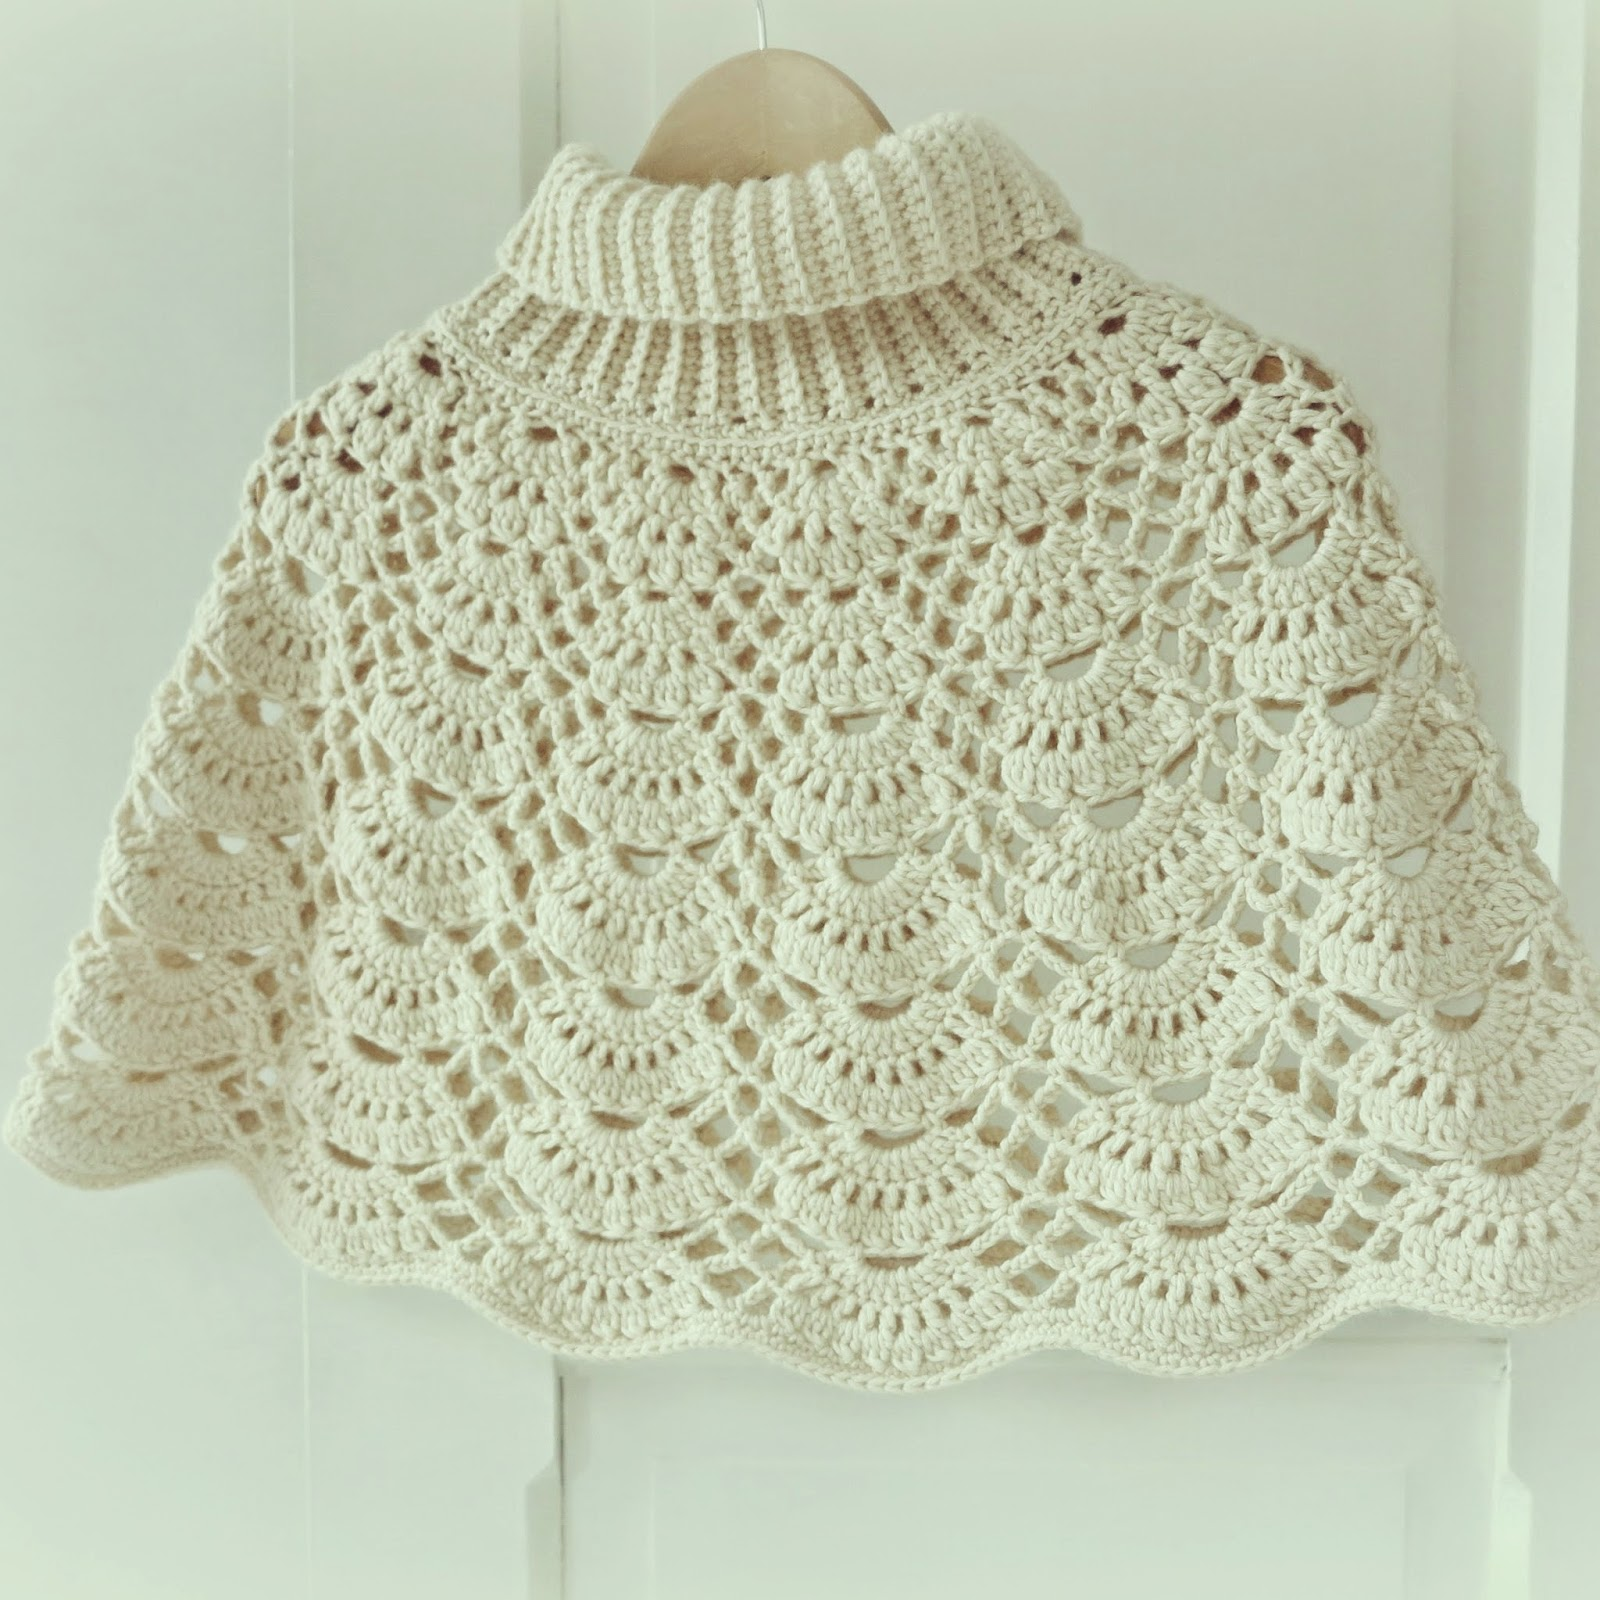 Free Patterns Crochet Cape : ByHaafner * crochet : Crochet Cape